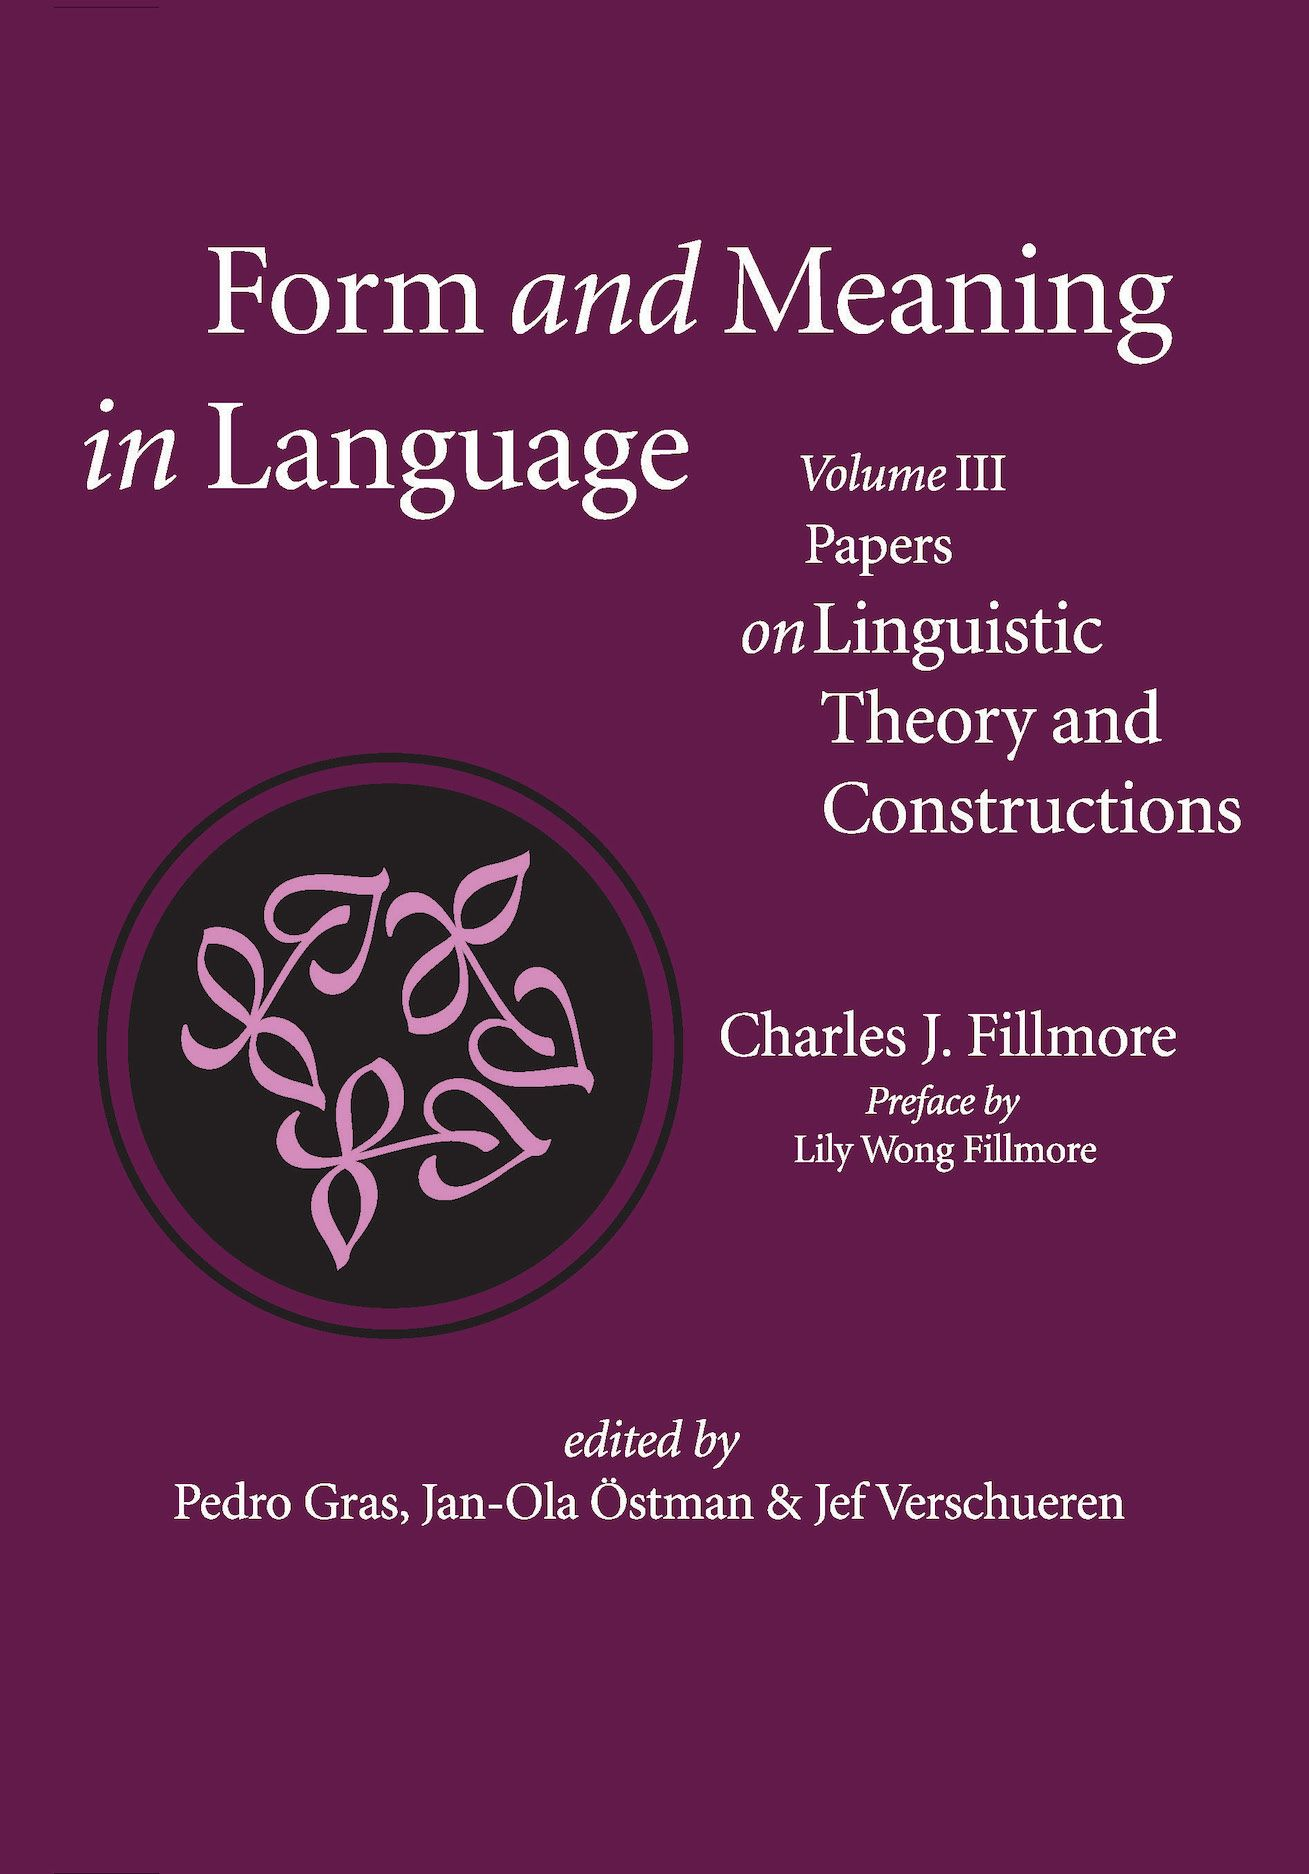 Form and Meaning in Language, Volume III: Papers on Linguistic Theory and Constructions